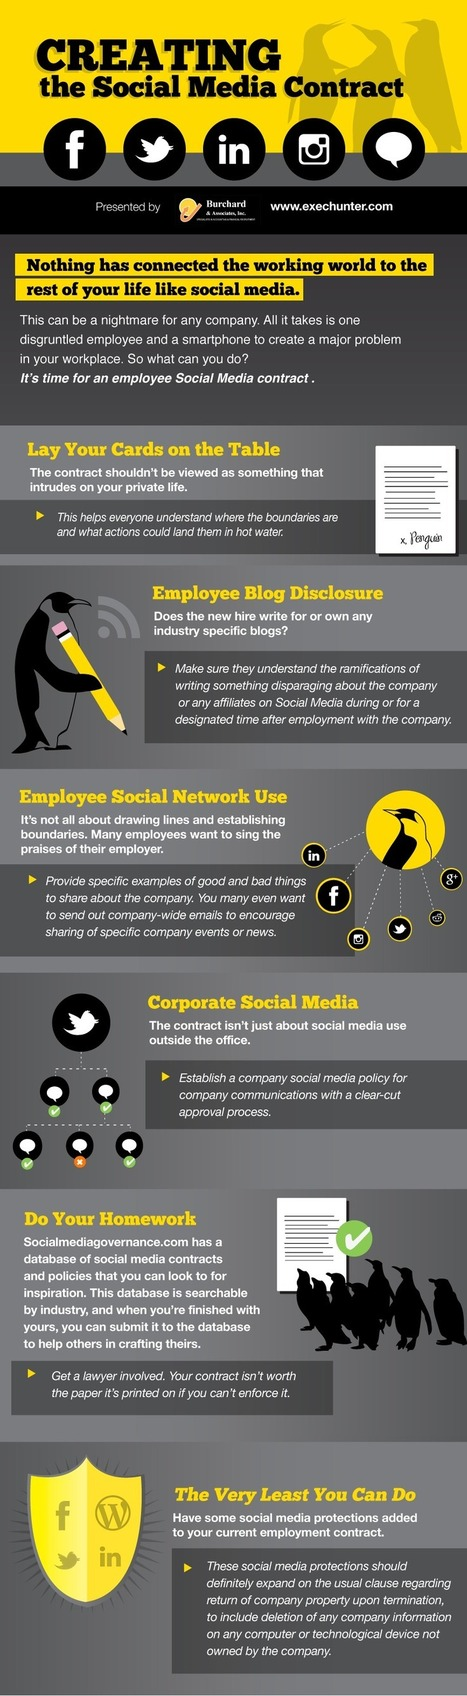 The Social Media Contract [infographic] | Personal branding and social media | Scoop.it